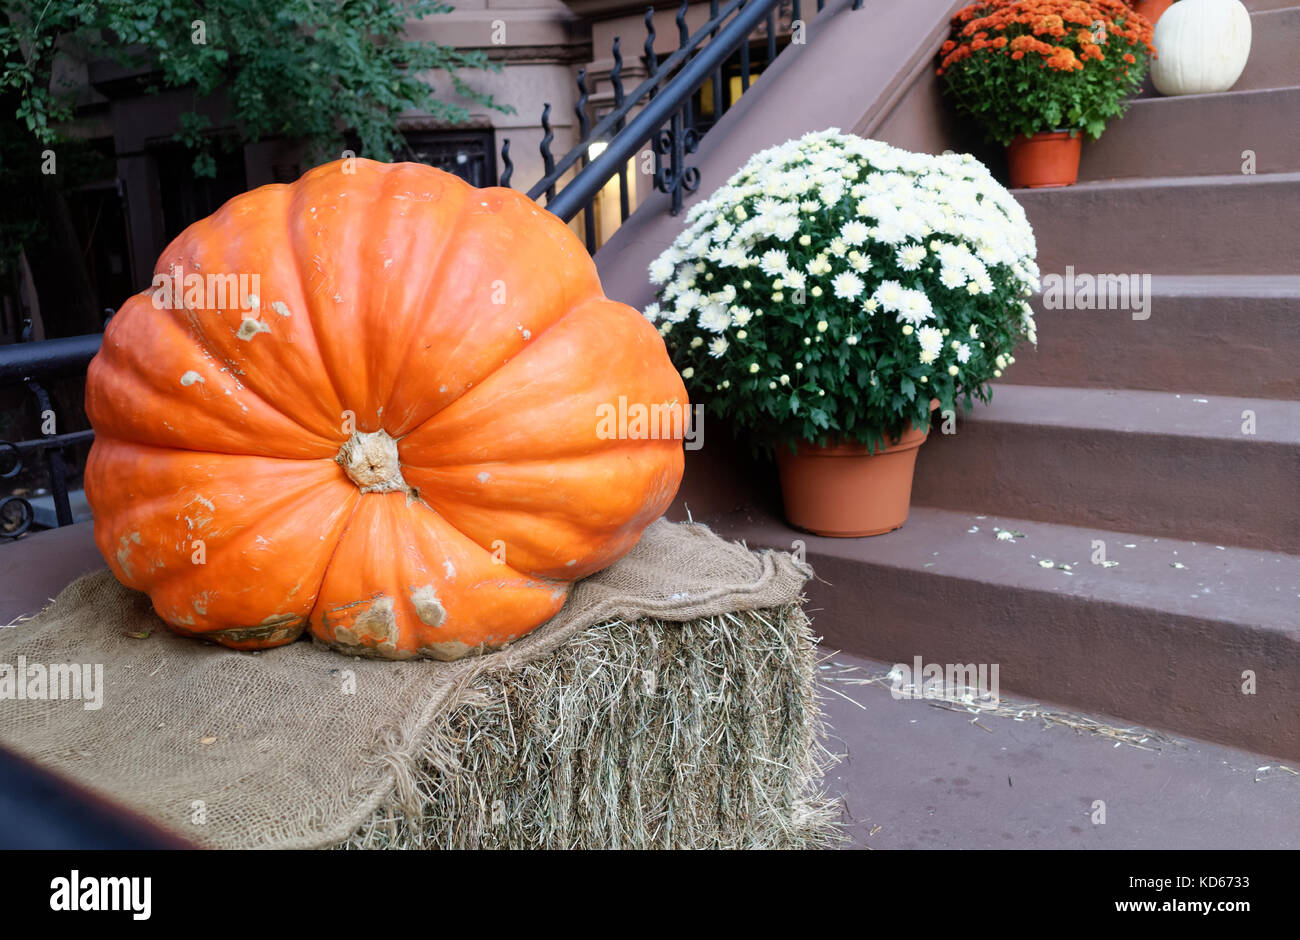 Large squashy pumpkin on a bale of hay with potted chrysanthemums on a Brooklyn brownstone stoop. - Stock Image